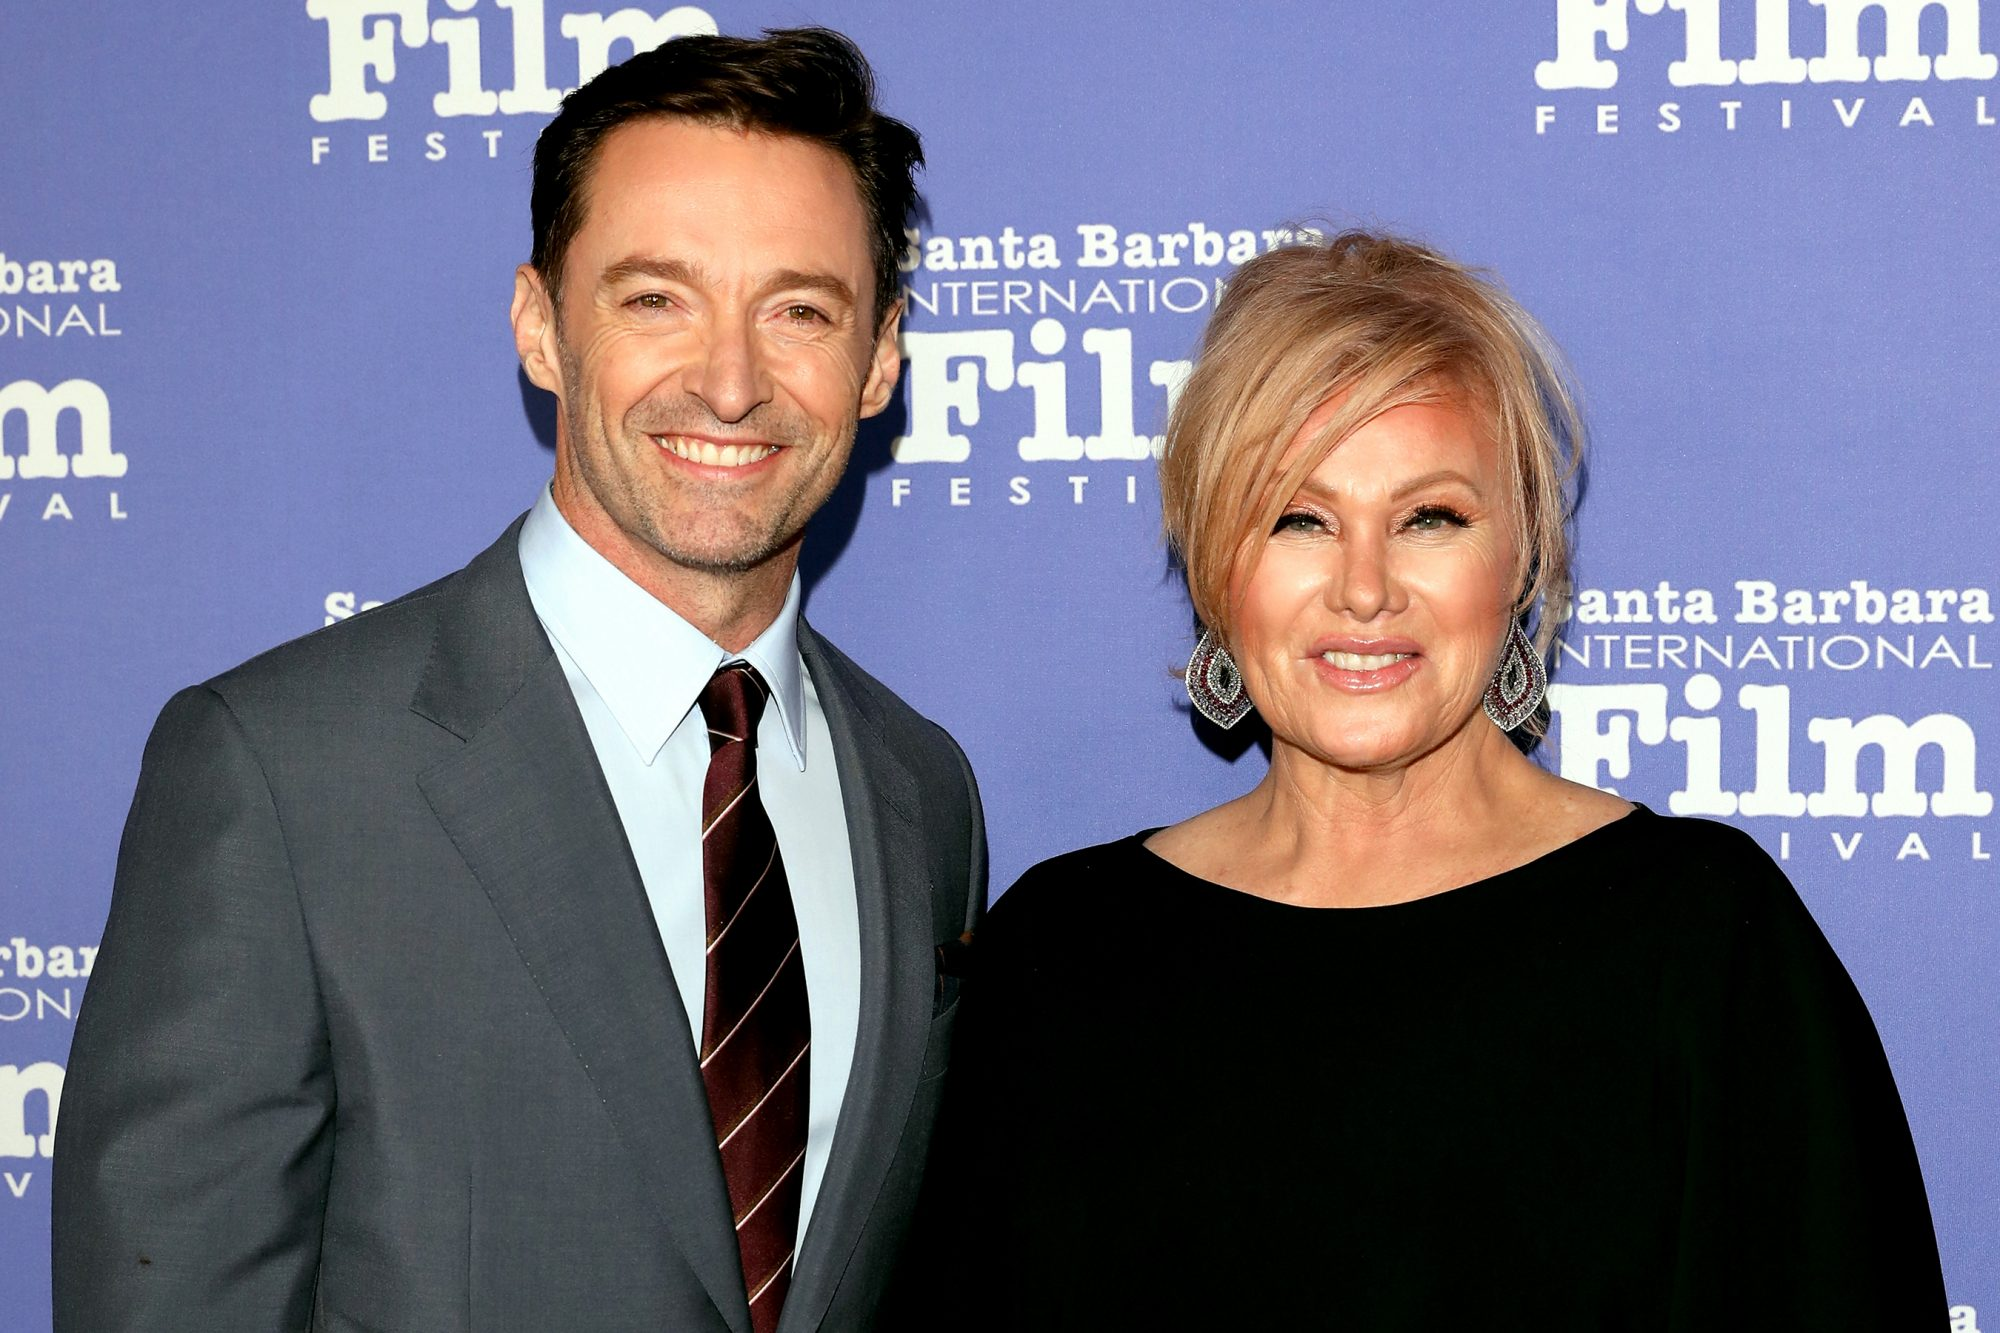 13th Annual Santa Barbara International Film Festival Honors Hugh Jackman With Kirk Douglas Award For Excellence In Film